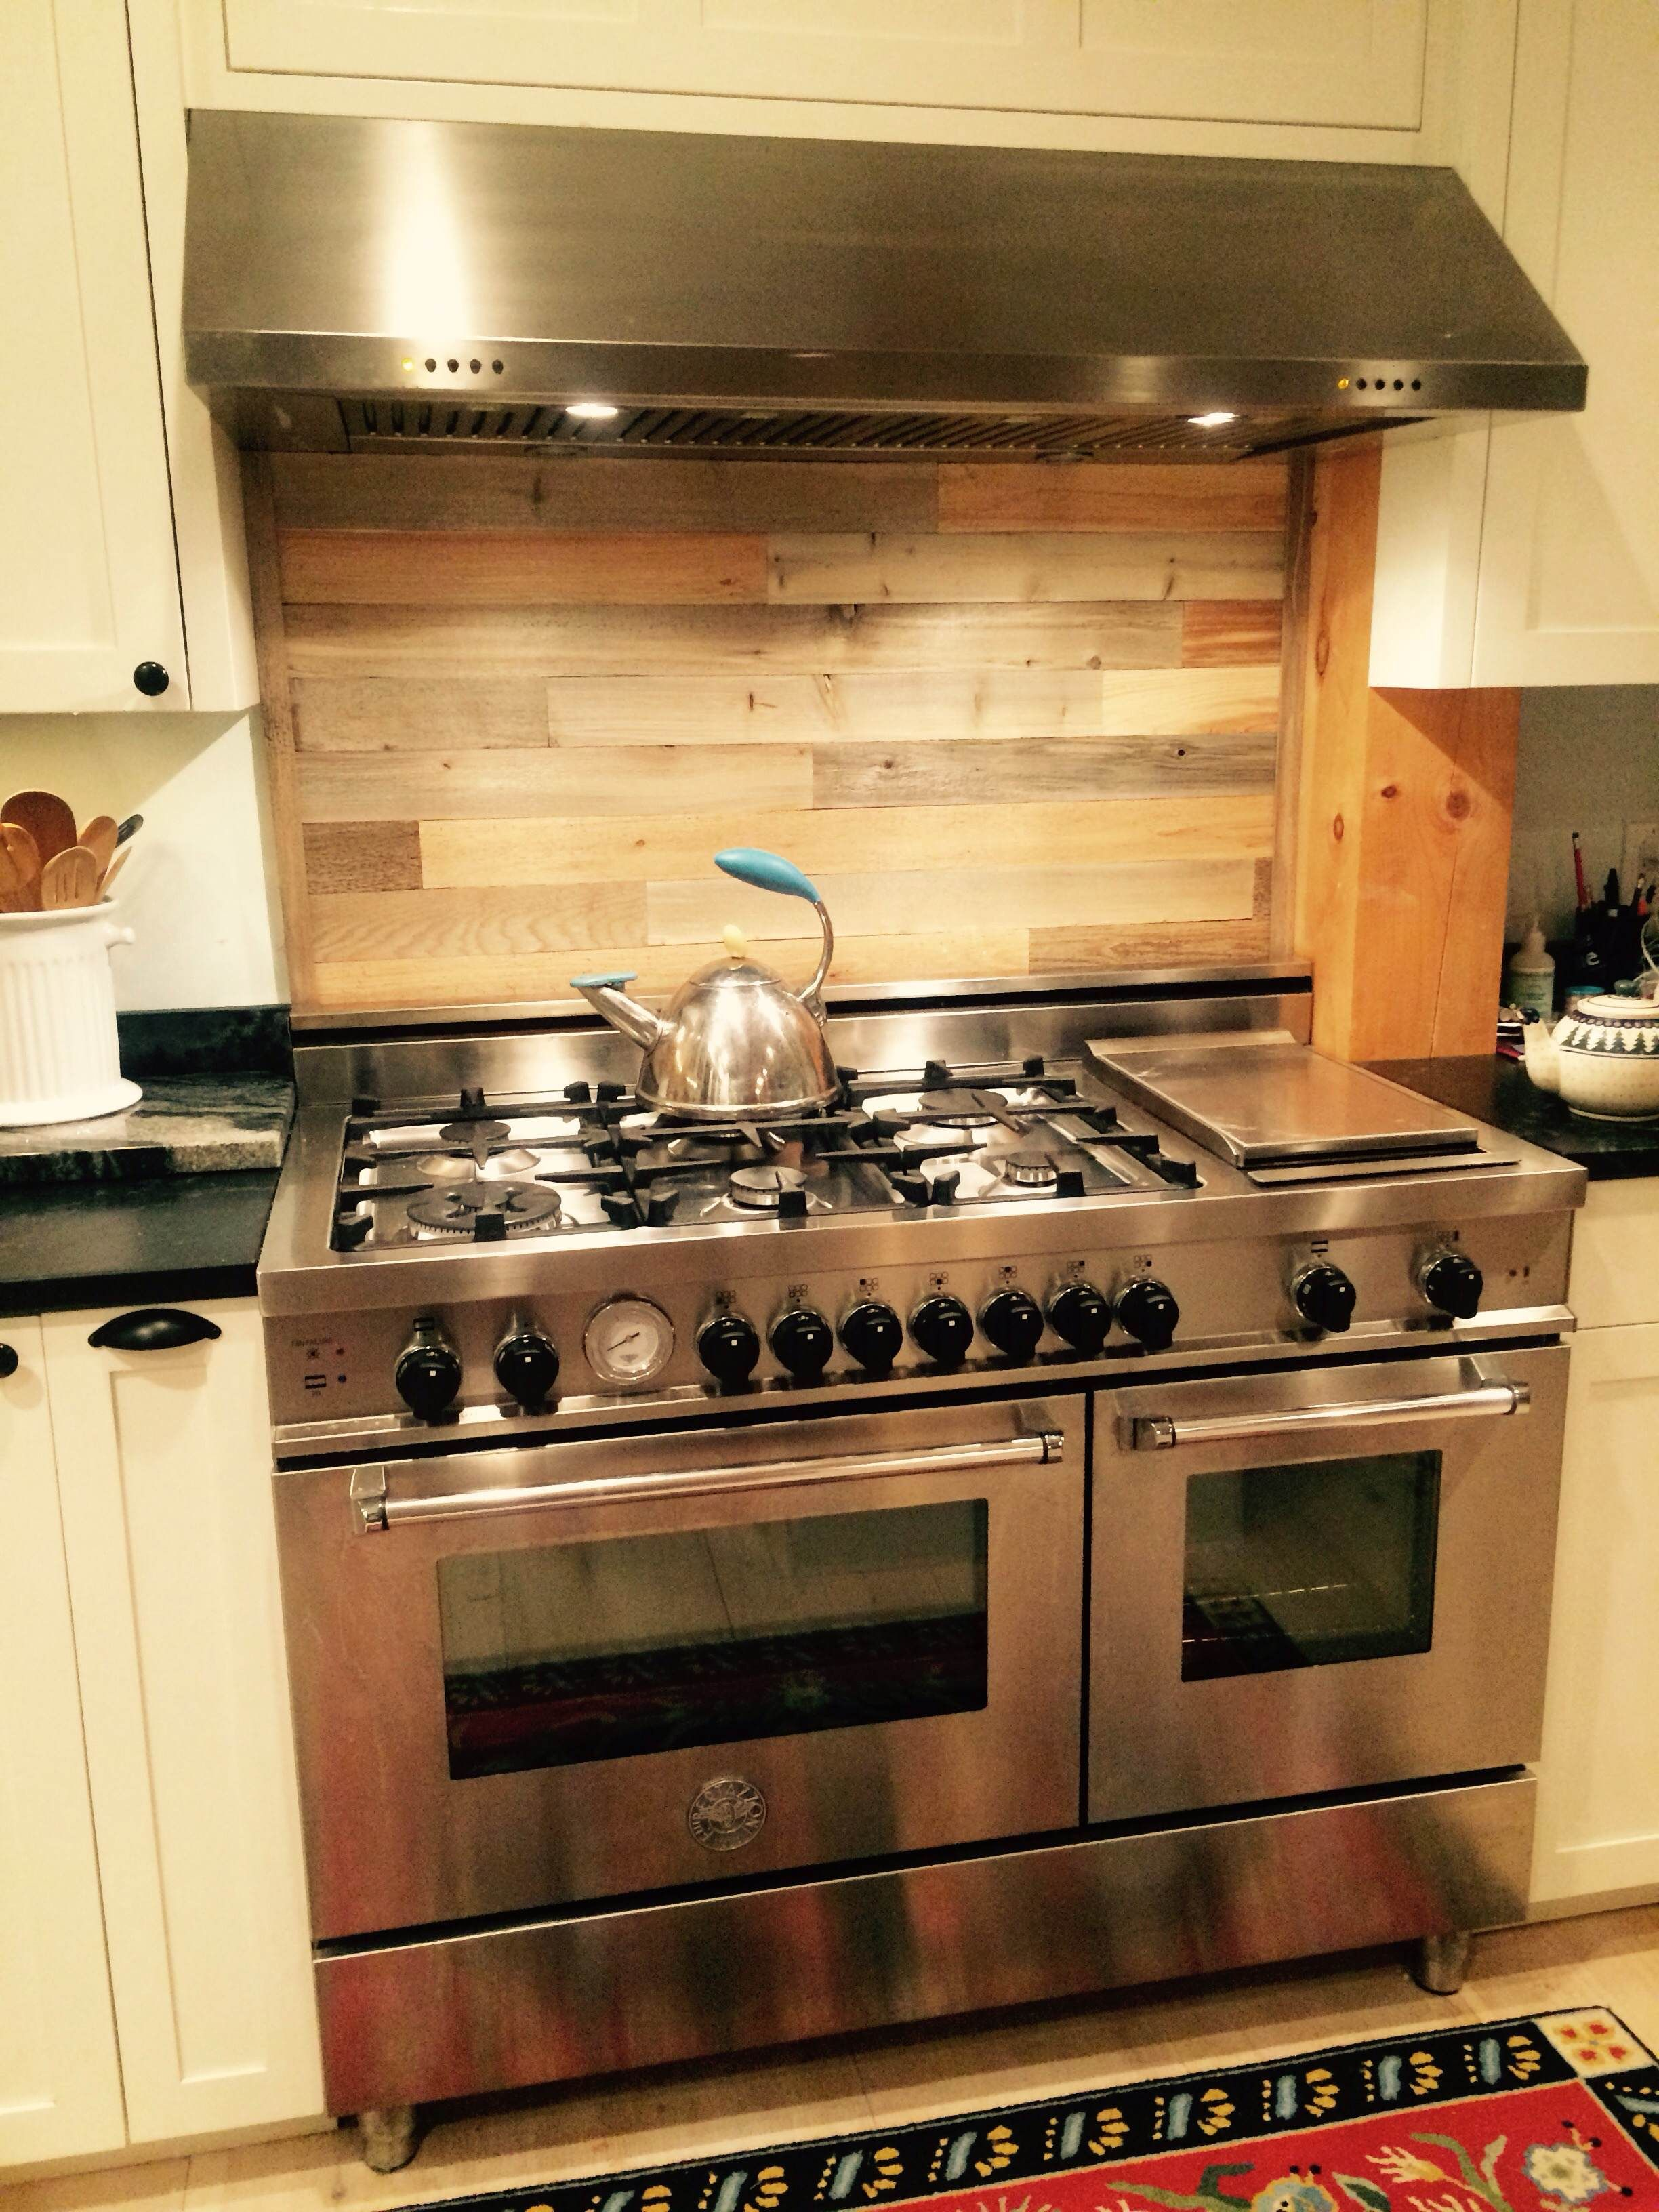 - Timberchic Sticks To The Old Tile Backsplash Behind This Stove